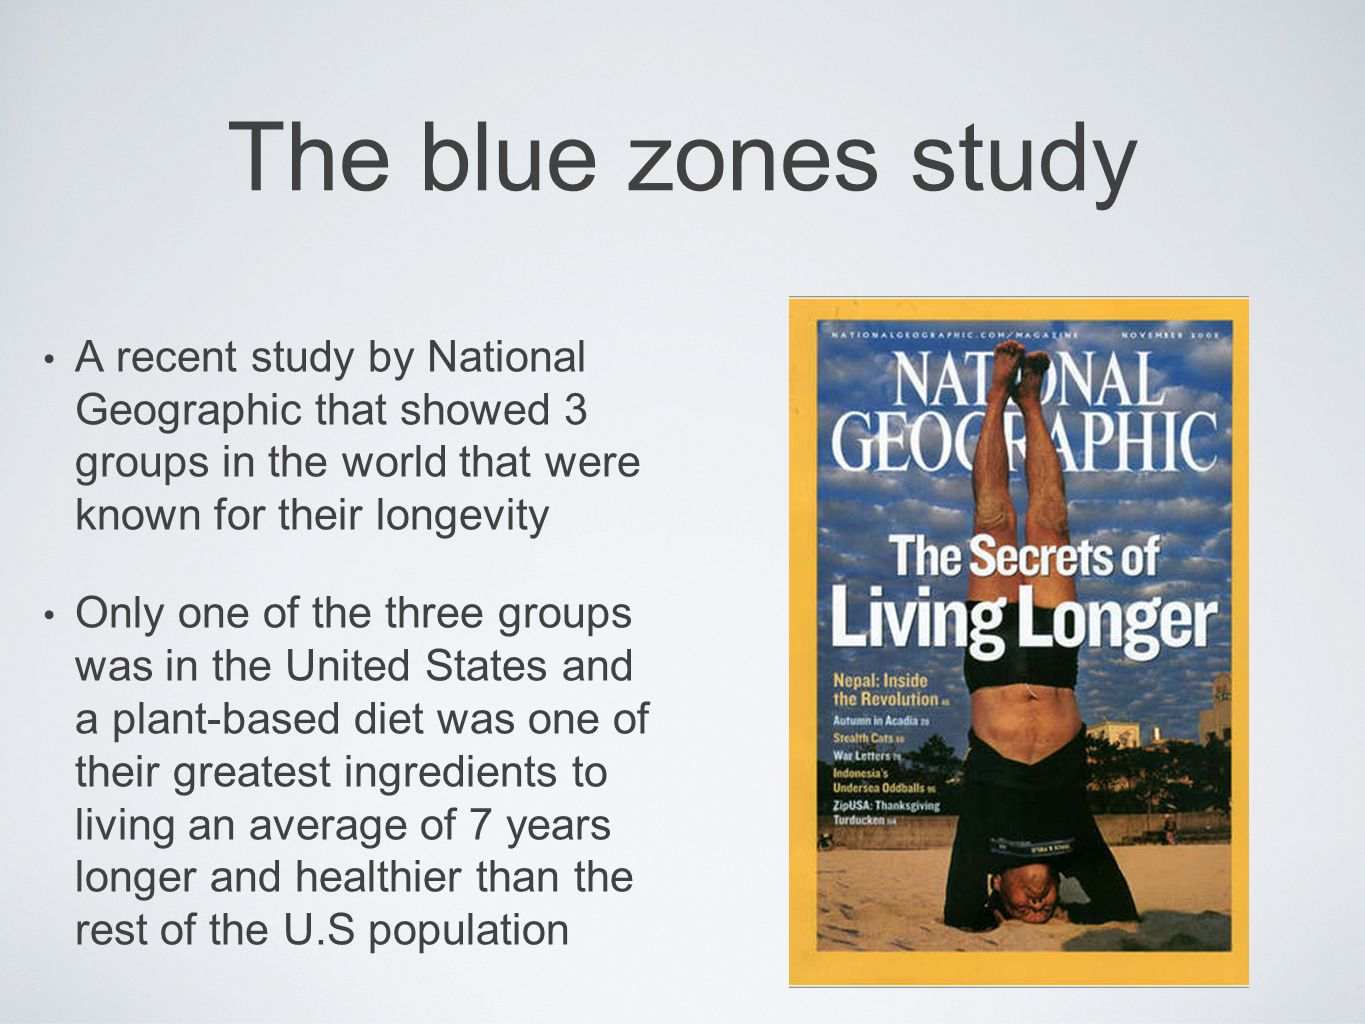 The blue zones study A recent study by National Geographic that showed 3 groups in the world that were known for their longevity Only one of the three